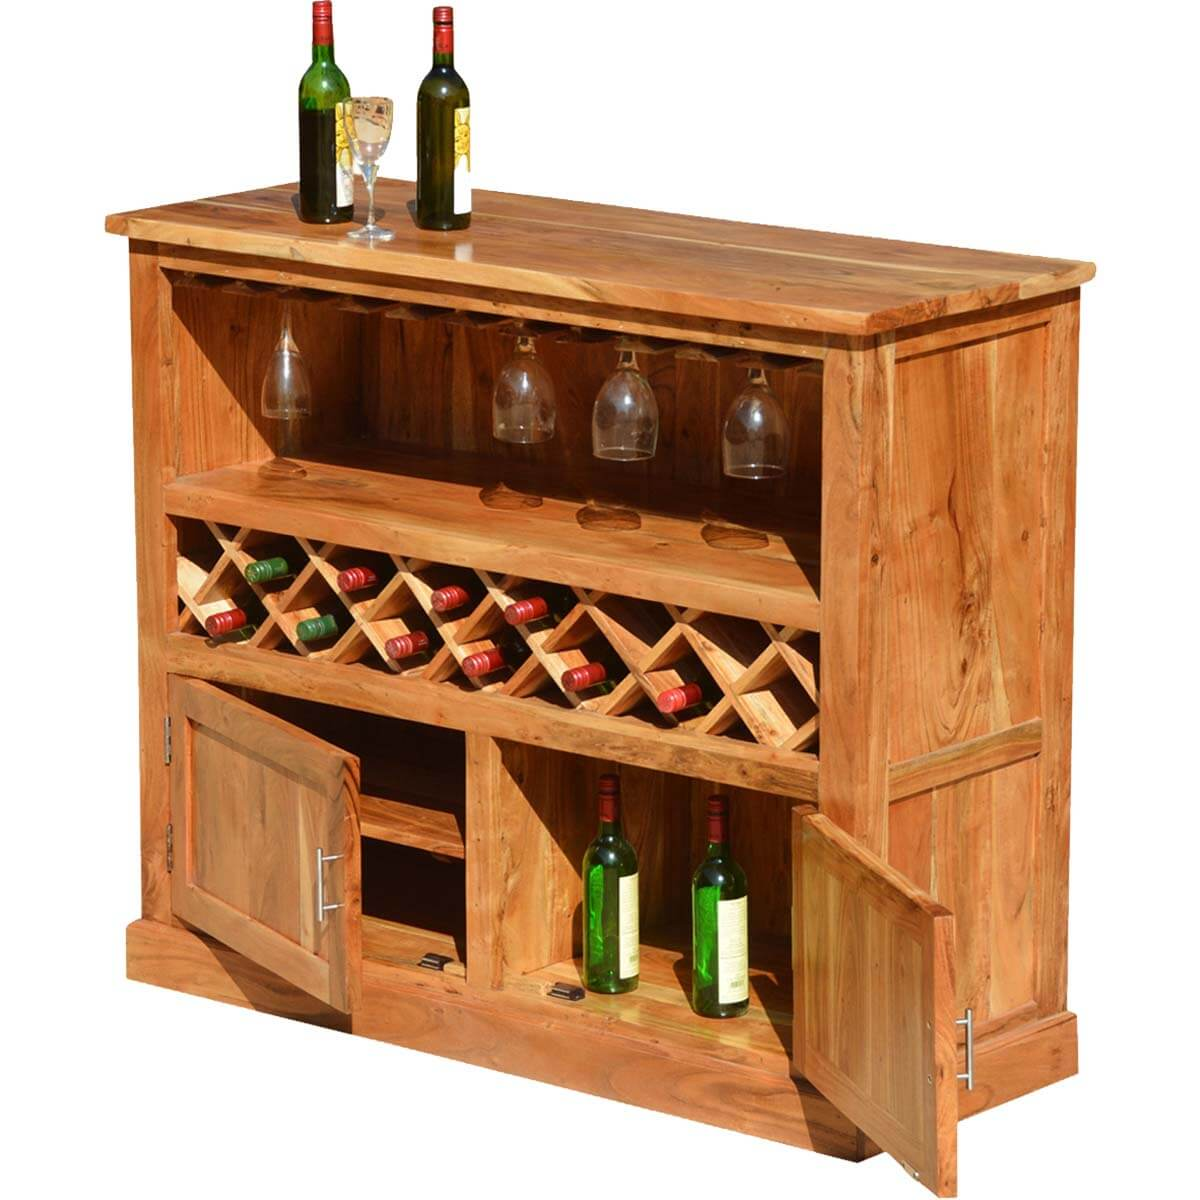 Wood Wine Bar ~ Modern rustic acacia wood bottle wine bar cabinet w